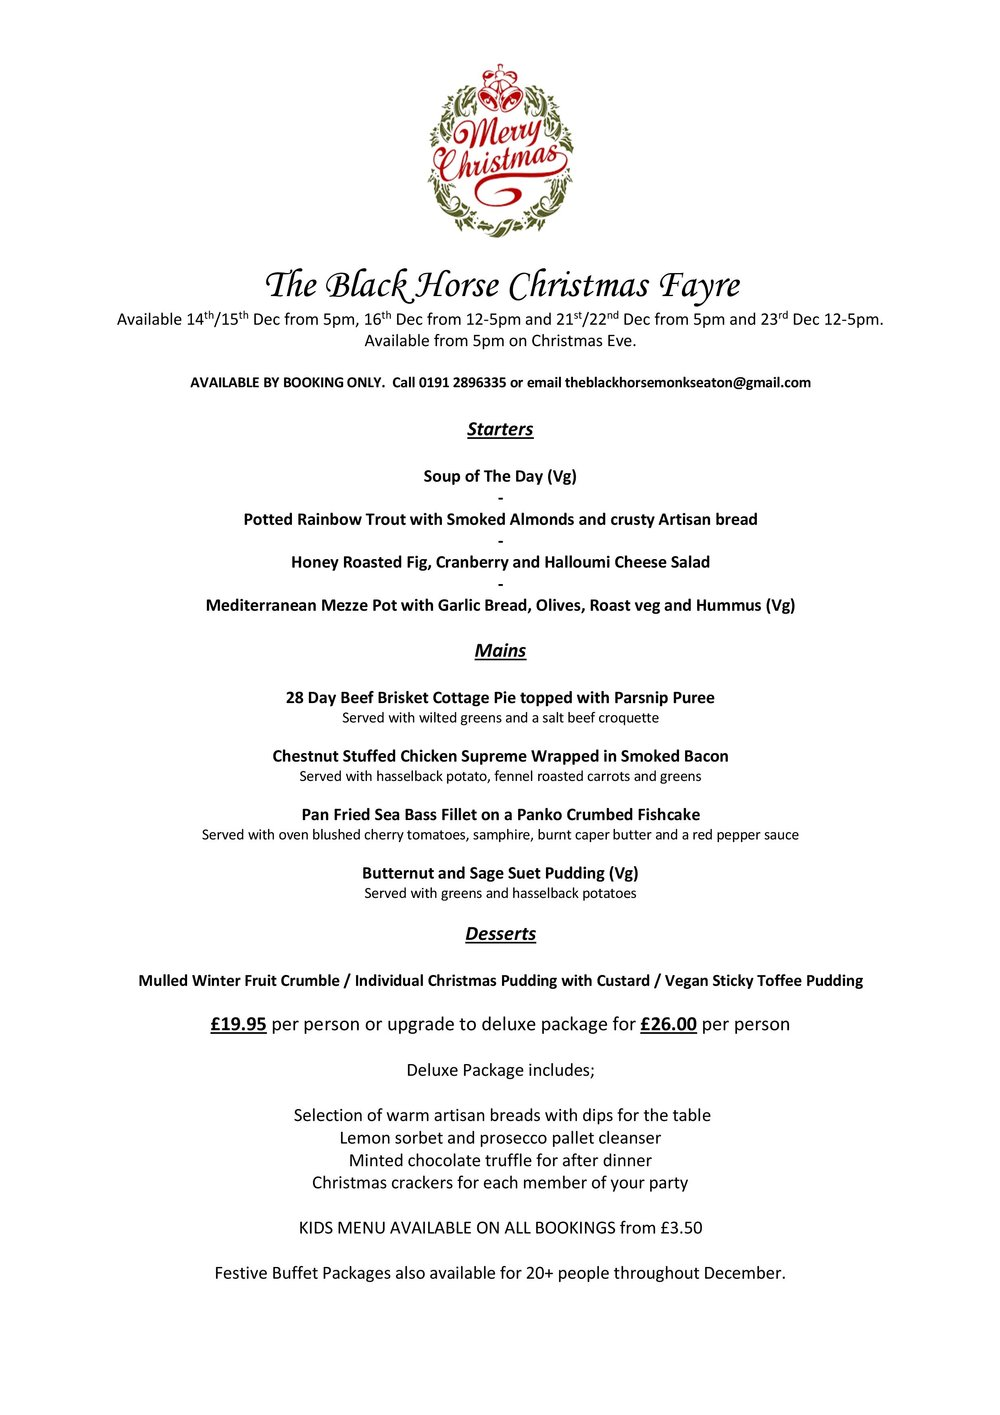 UPDATED The Black Horse Christmas Fayre-page-001.jpg